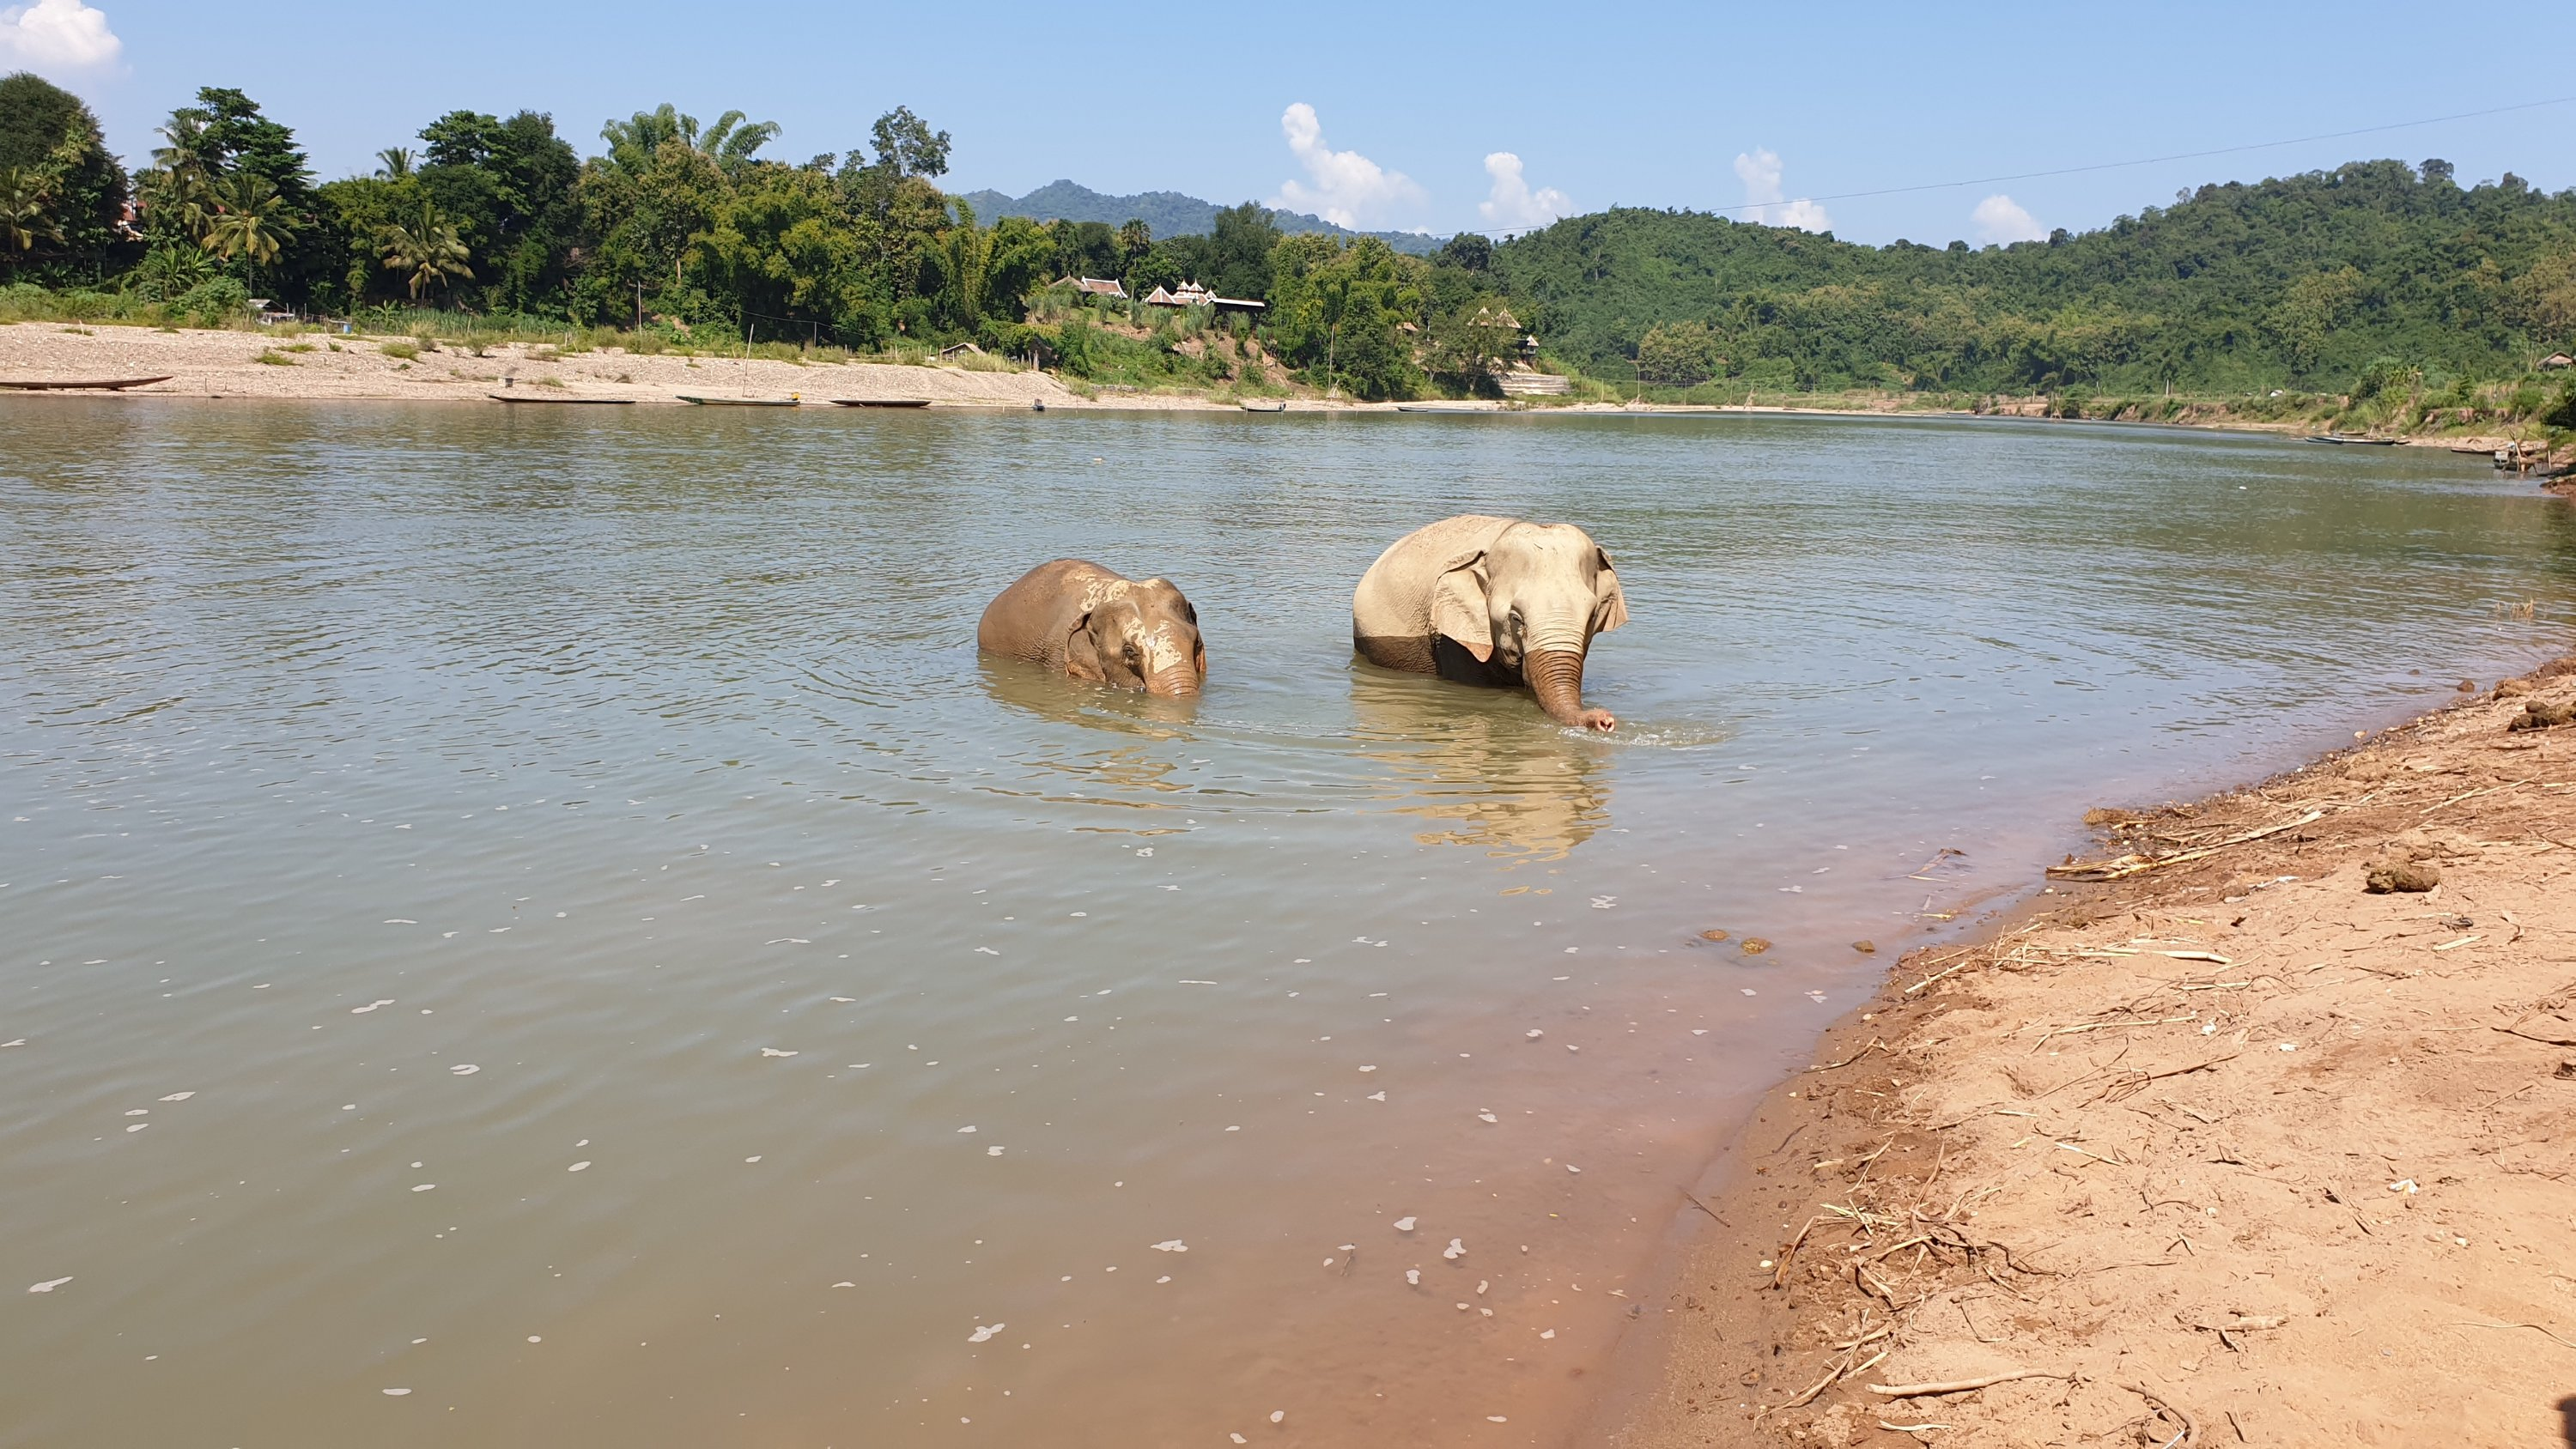 Elephants bathing in the Mekong River